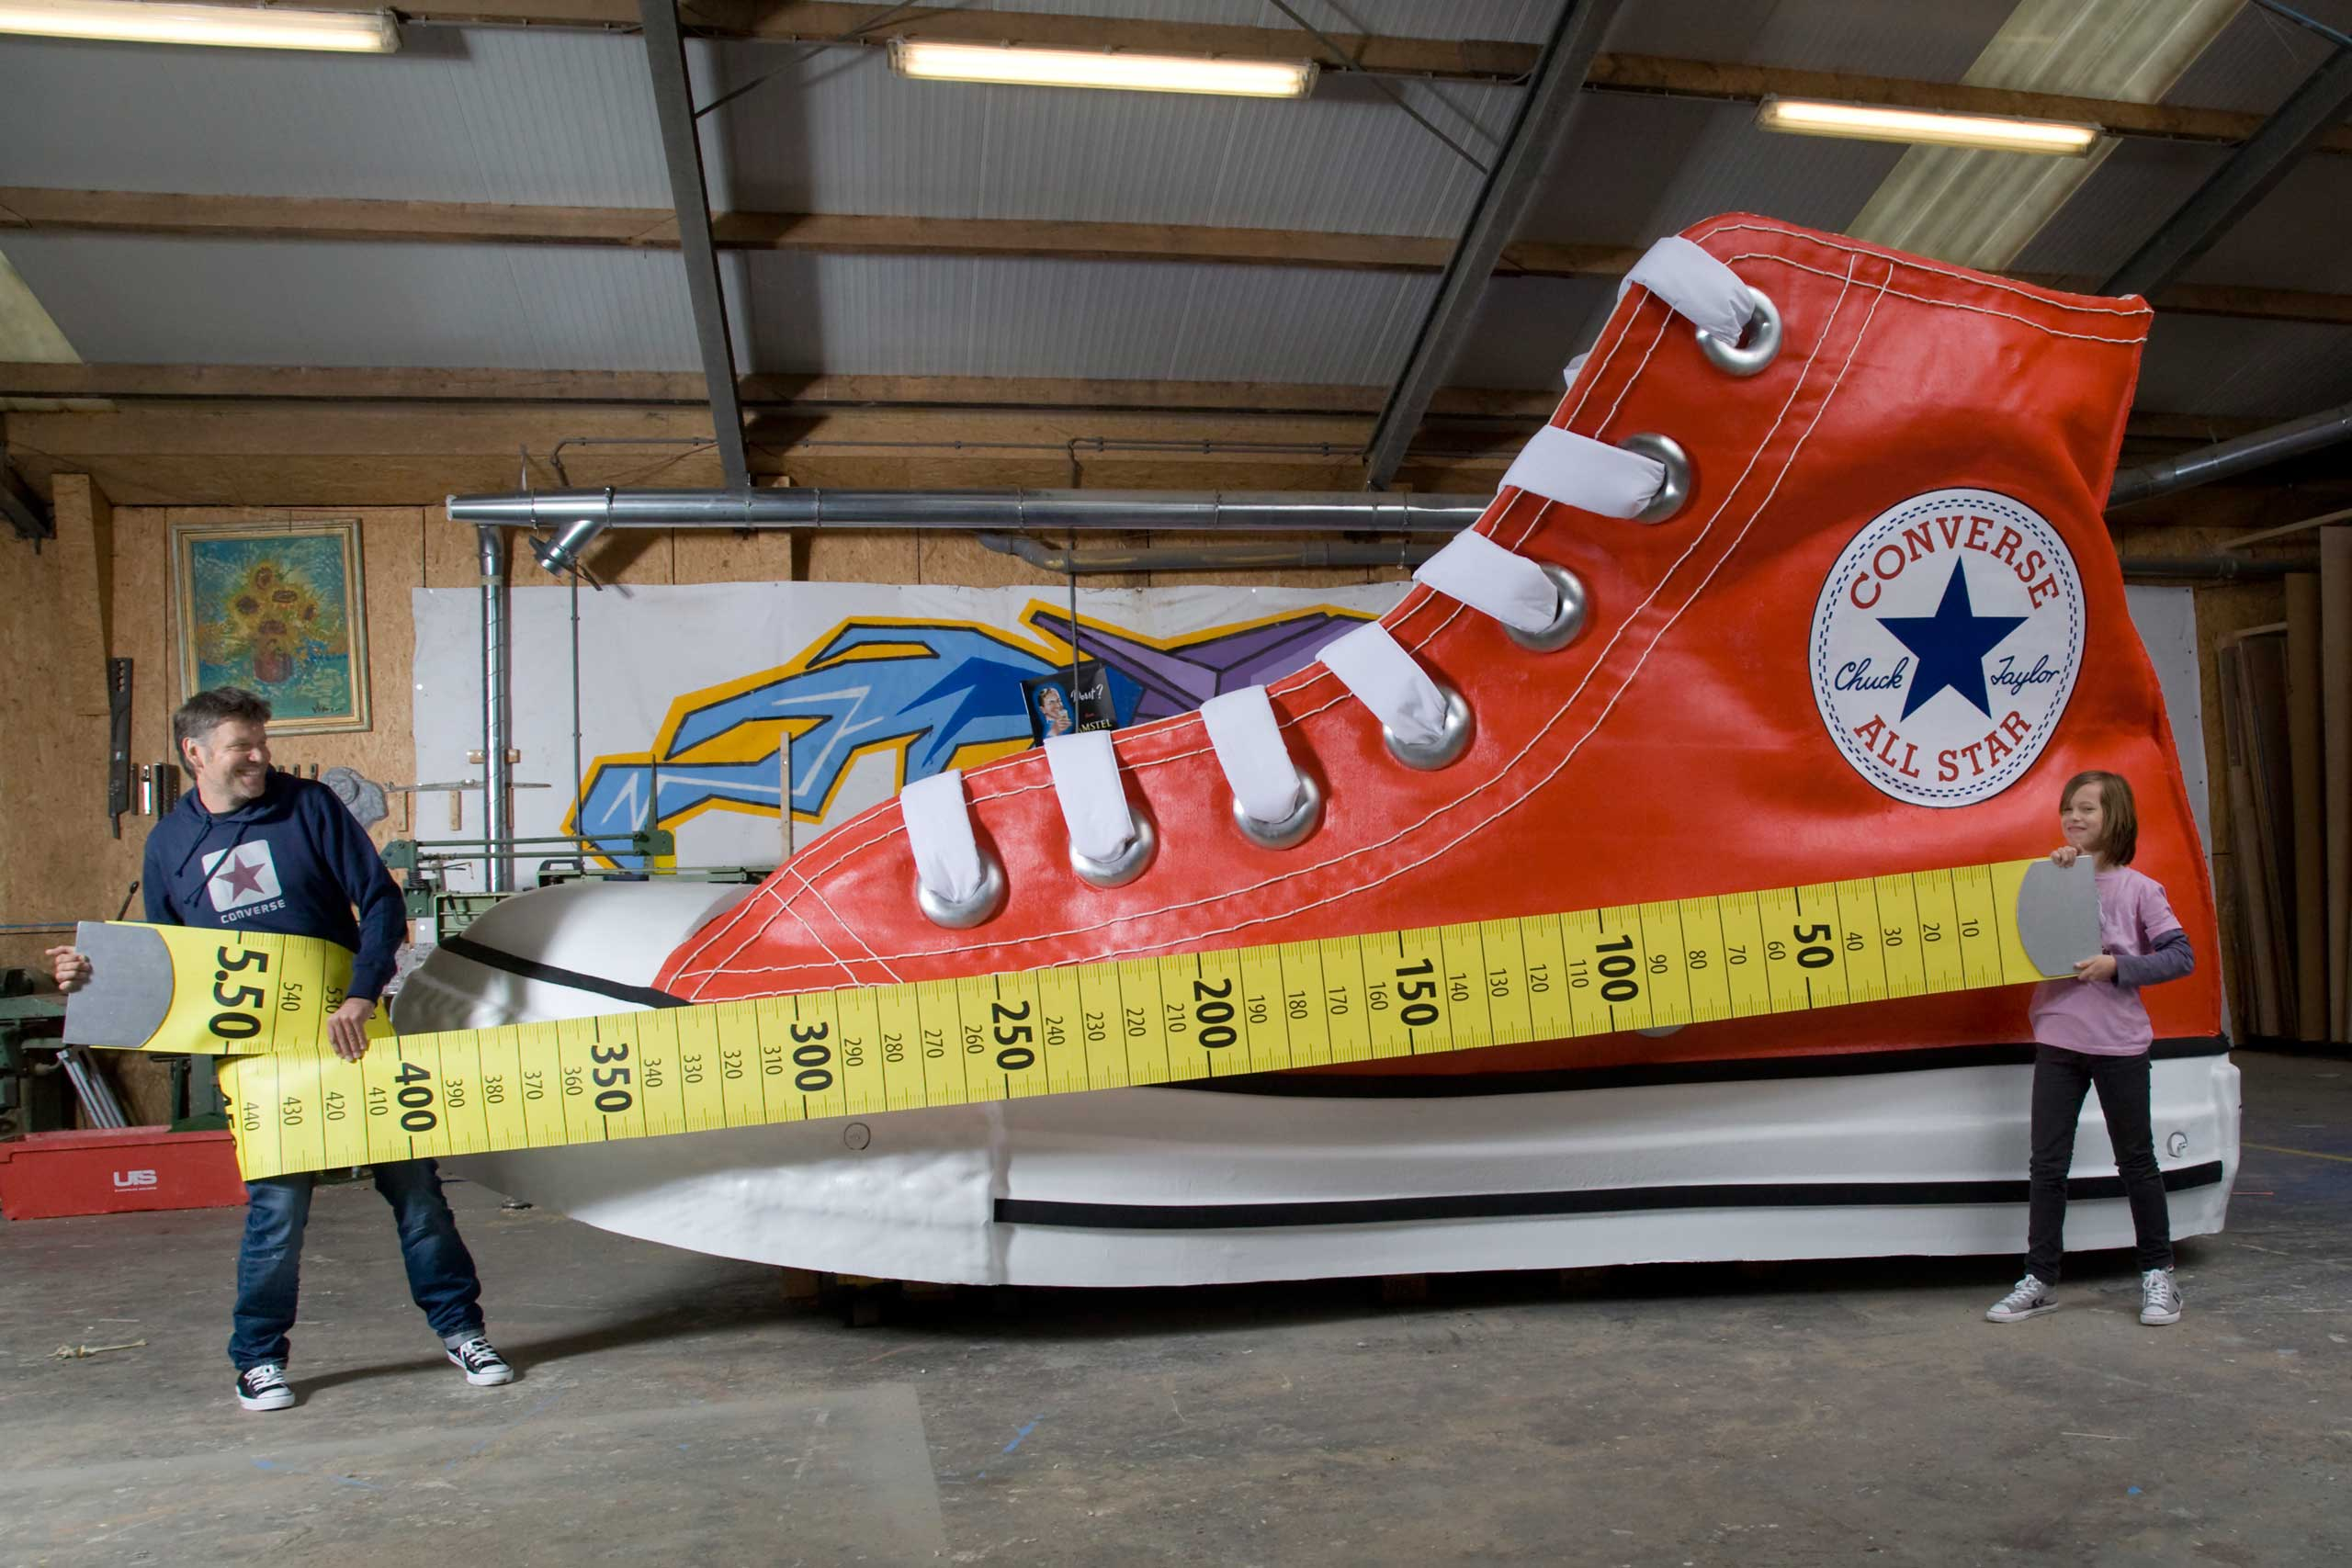 The largest shoe measures 18 ft 0.53 in x 6 ft 11.07 in and is 9 ft 6.17 high.